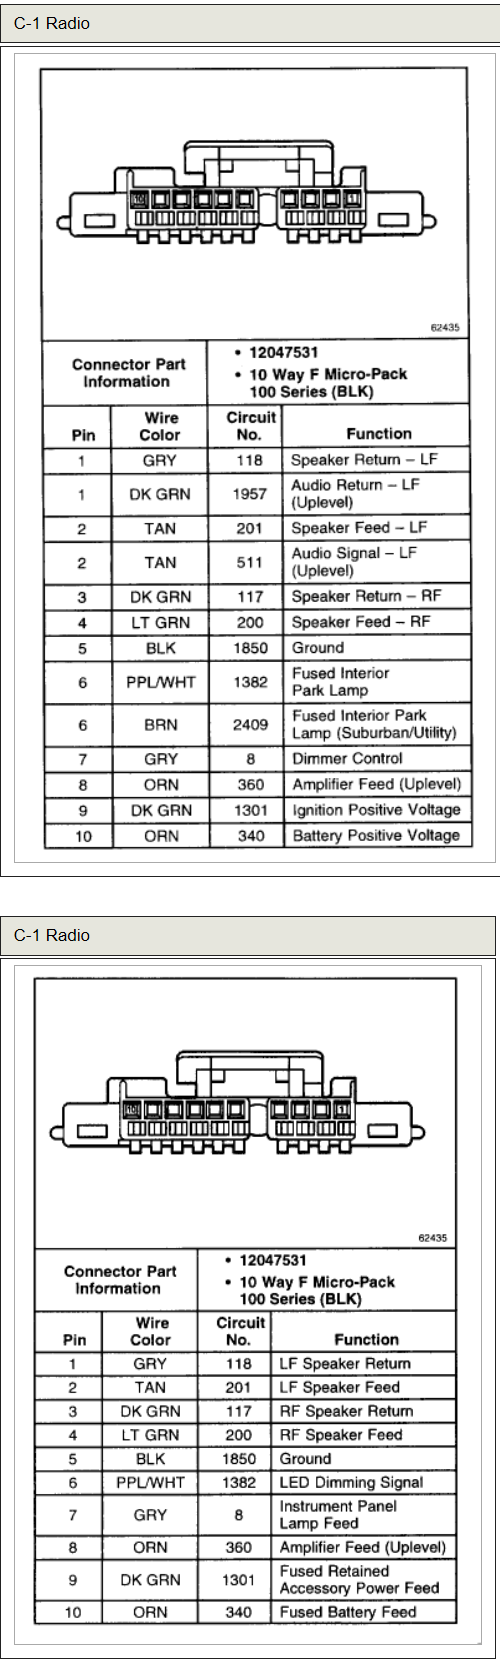 Wiring Diagram As Well Electrical Diagrams Chevrolet Cars Car Radio Stereo Audio Autoradio Connector Wire Installation Schematic Schema Esquema De Conexiones Anschlusskammern Konektor